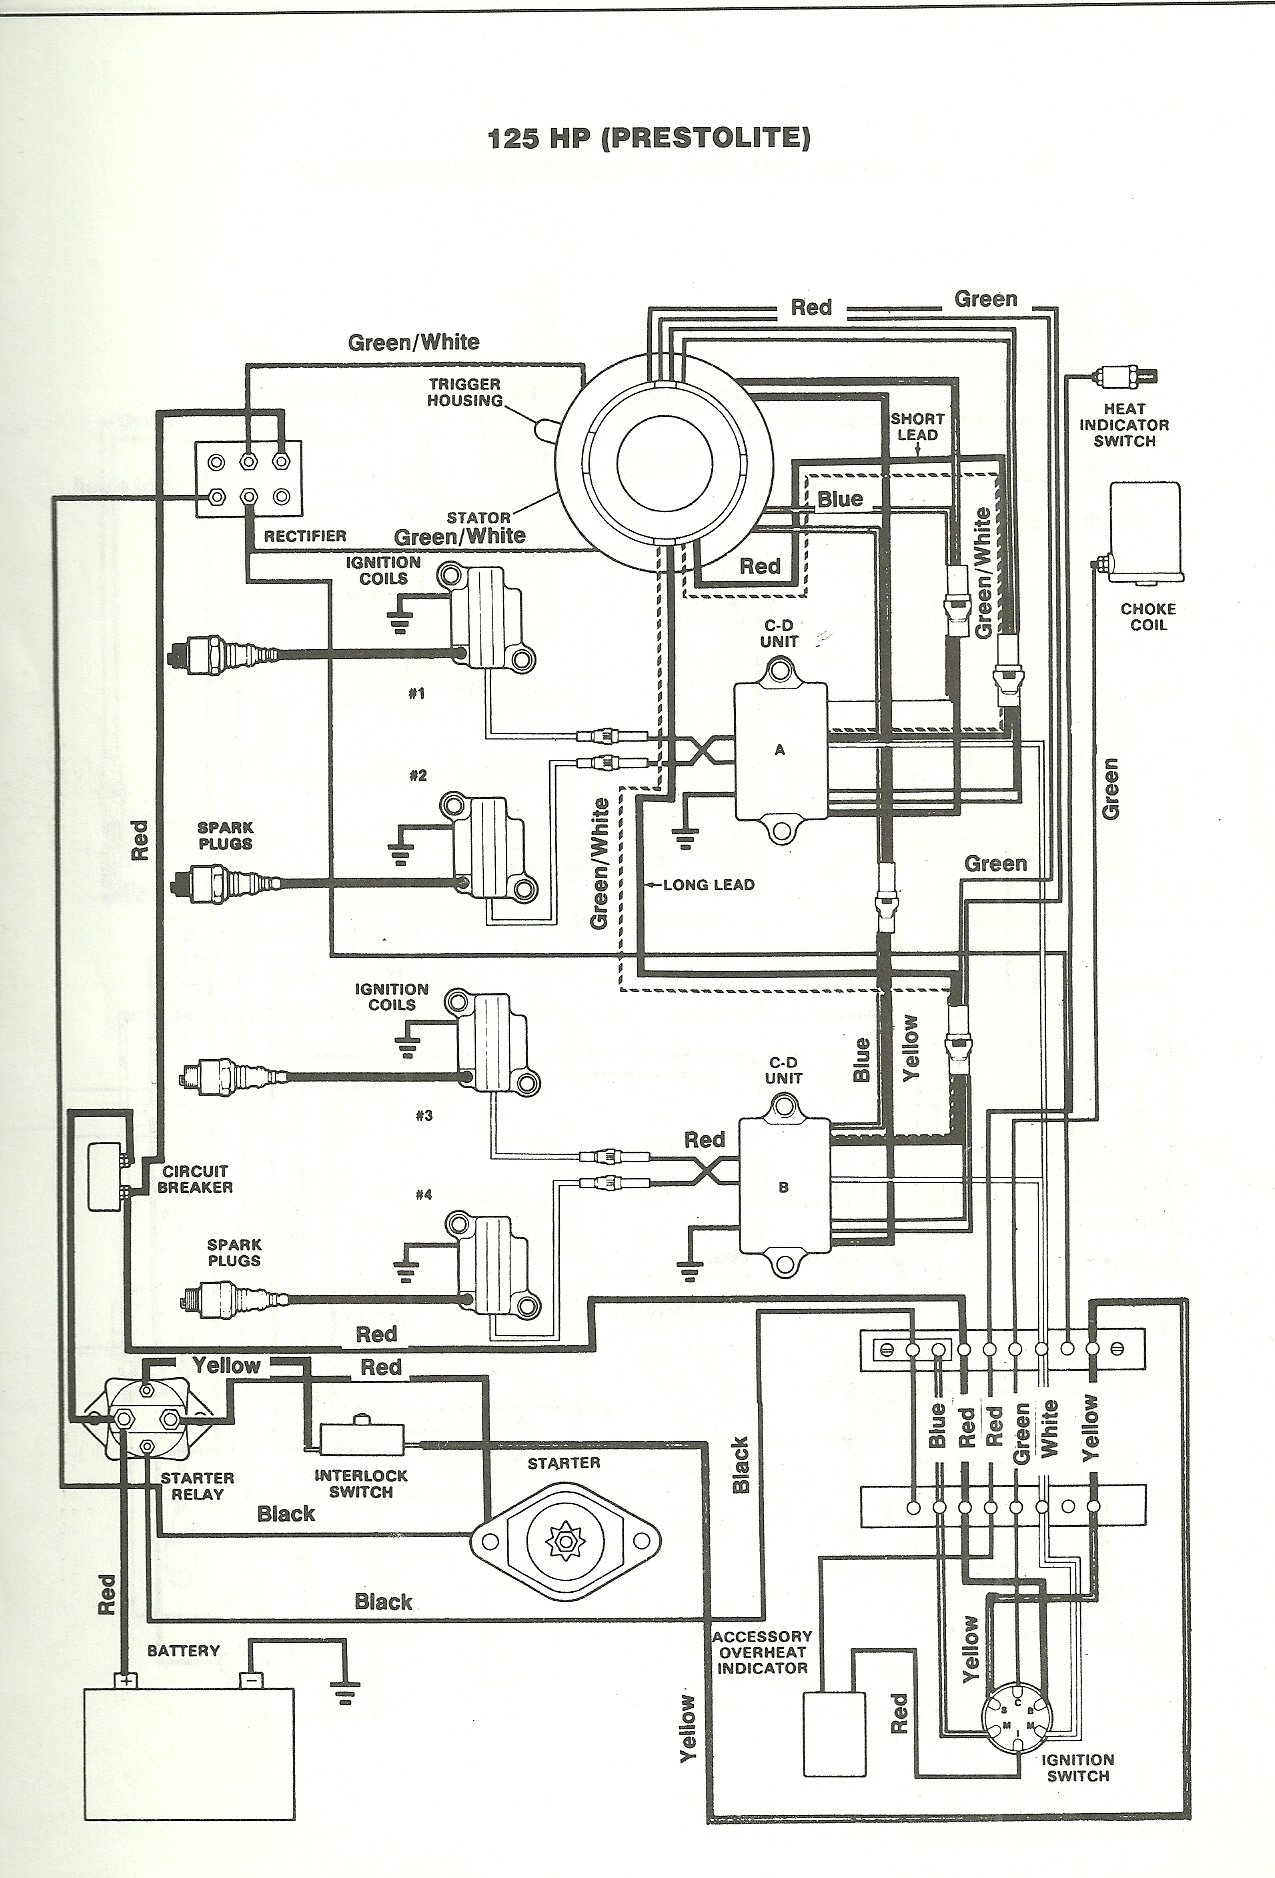 2013 05 03_233735_scan0002 force 125 wiring diagram 1988 wiring diagrams  at gsmportal.co